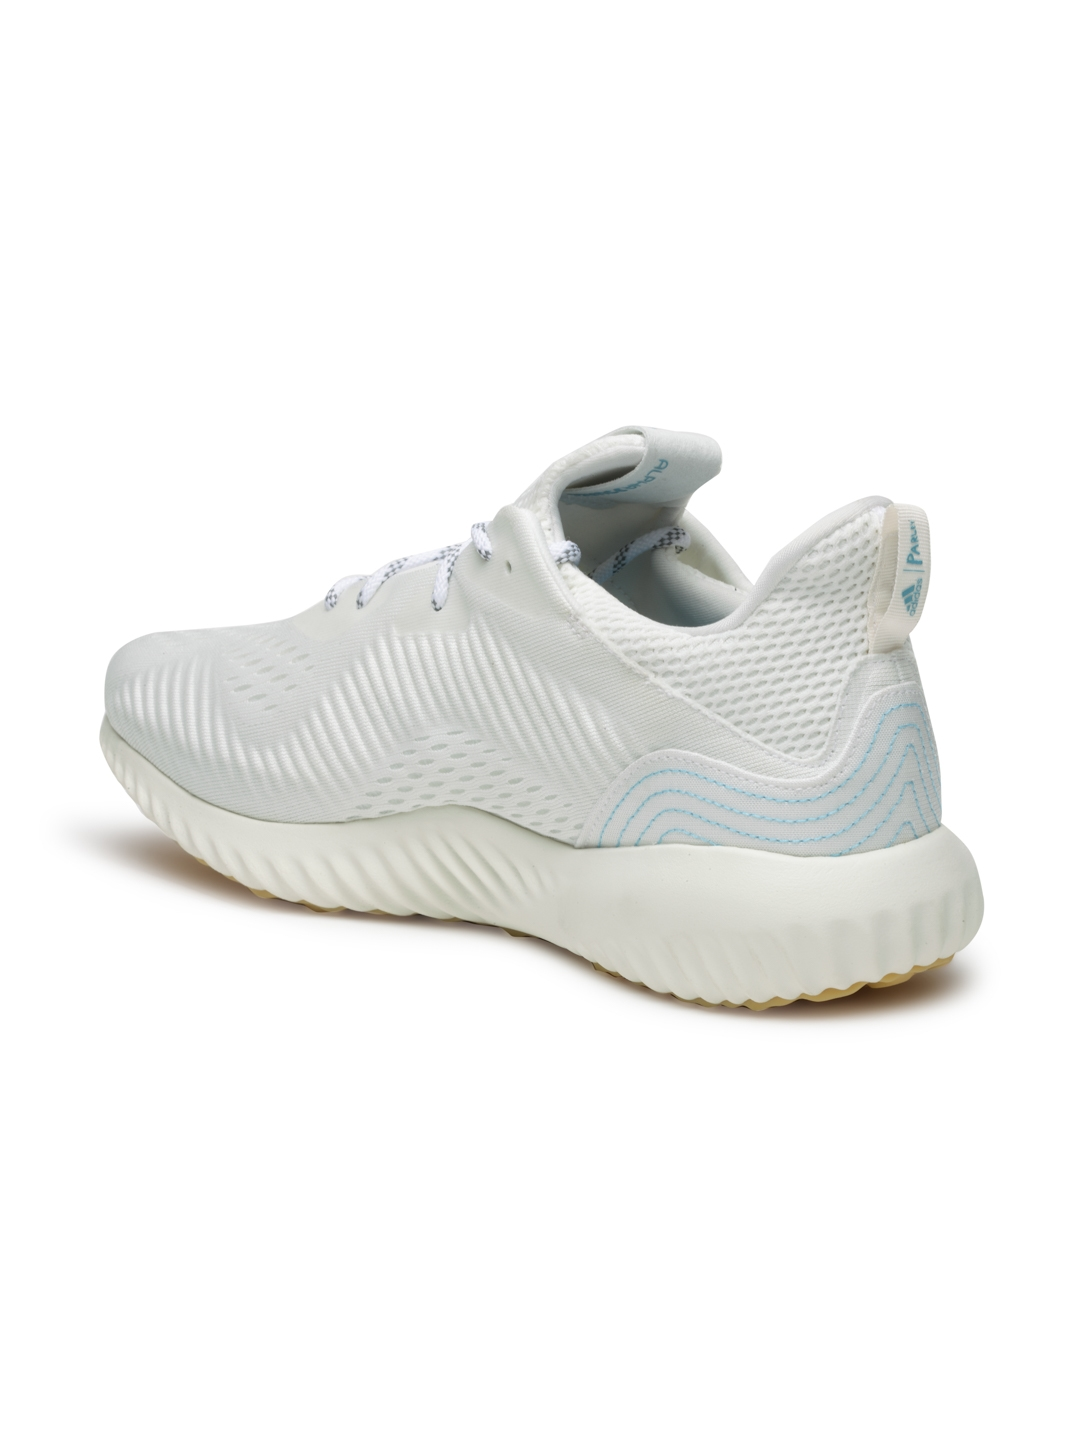 outlet store d74e9 a7040 ADIDAS Women Off-White ALPHABOUNCE 1 PARLEY Running Shoes